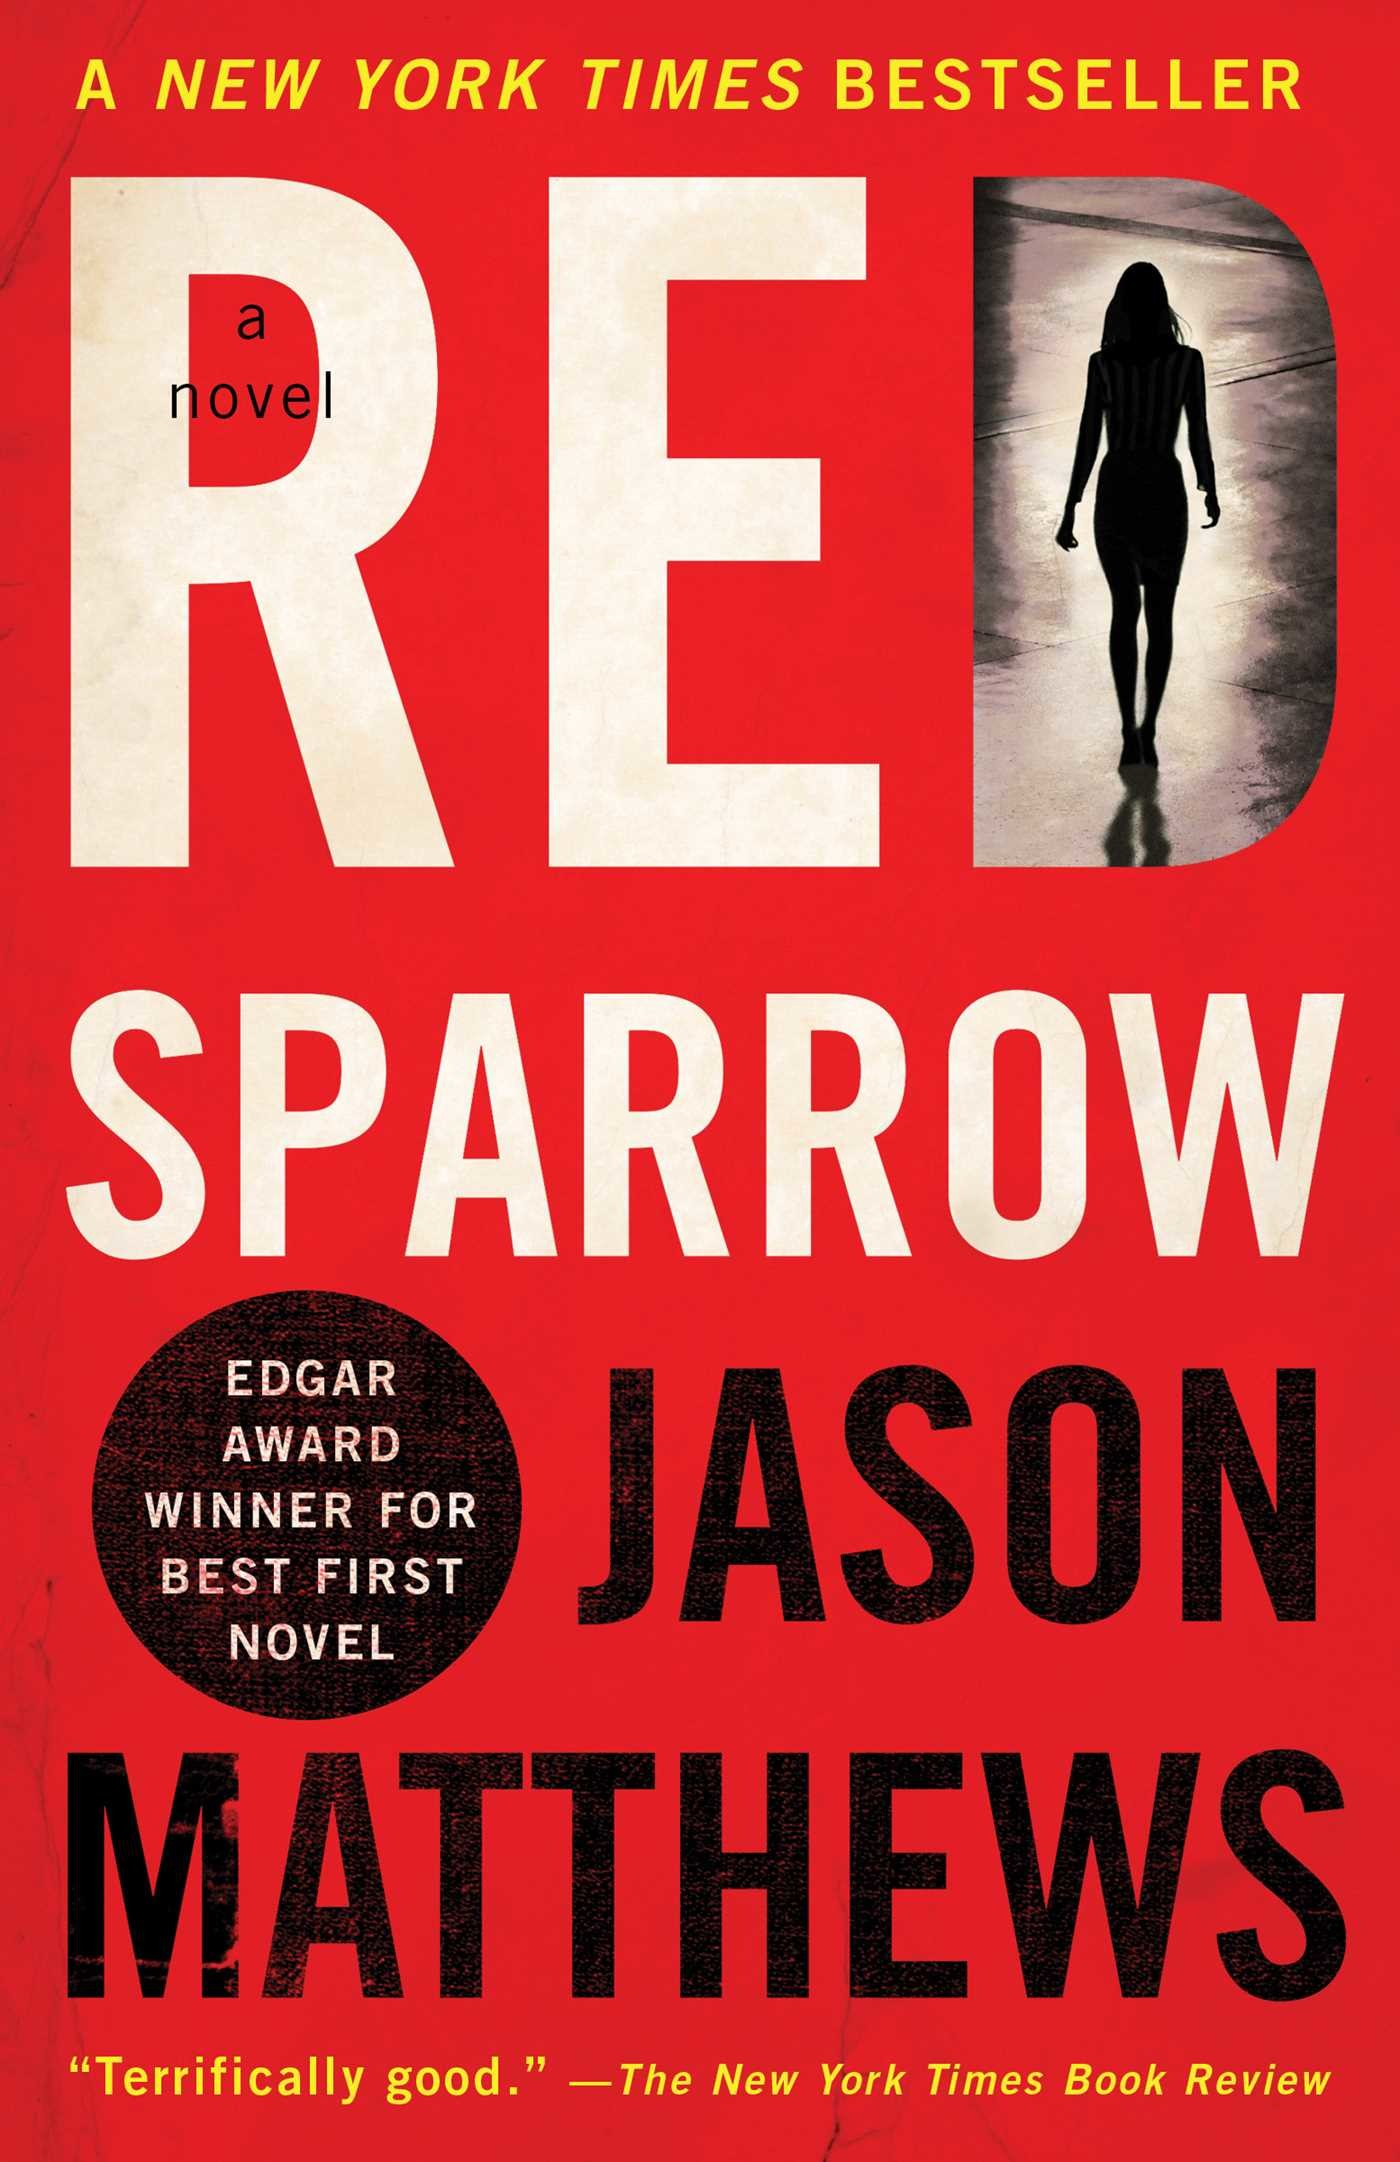 Red sparrow 9781476706139.in01